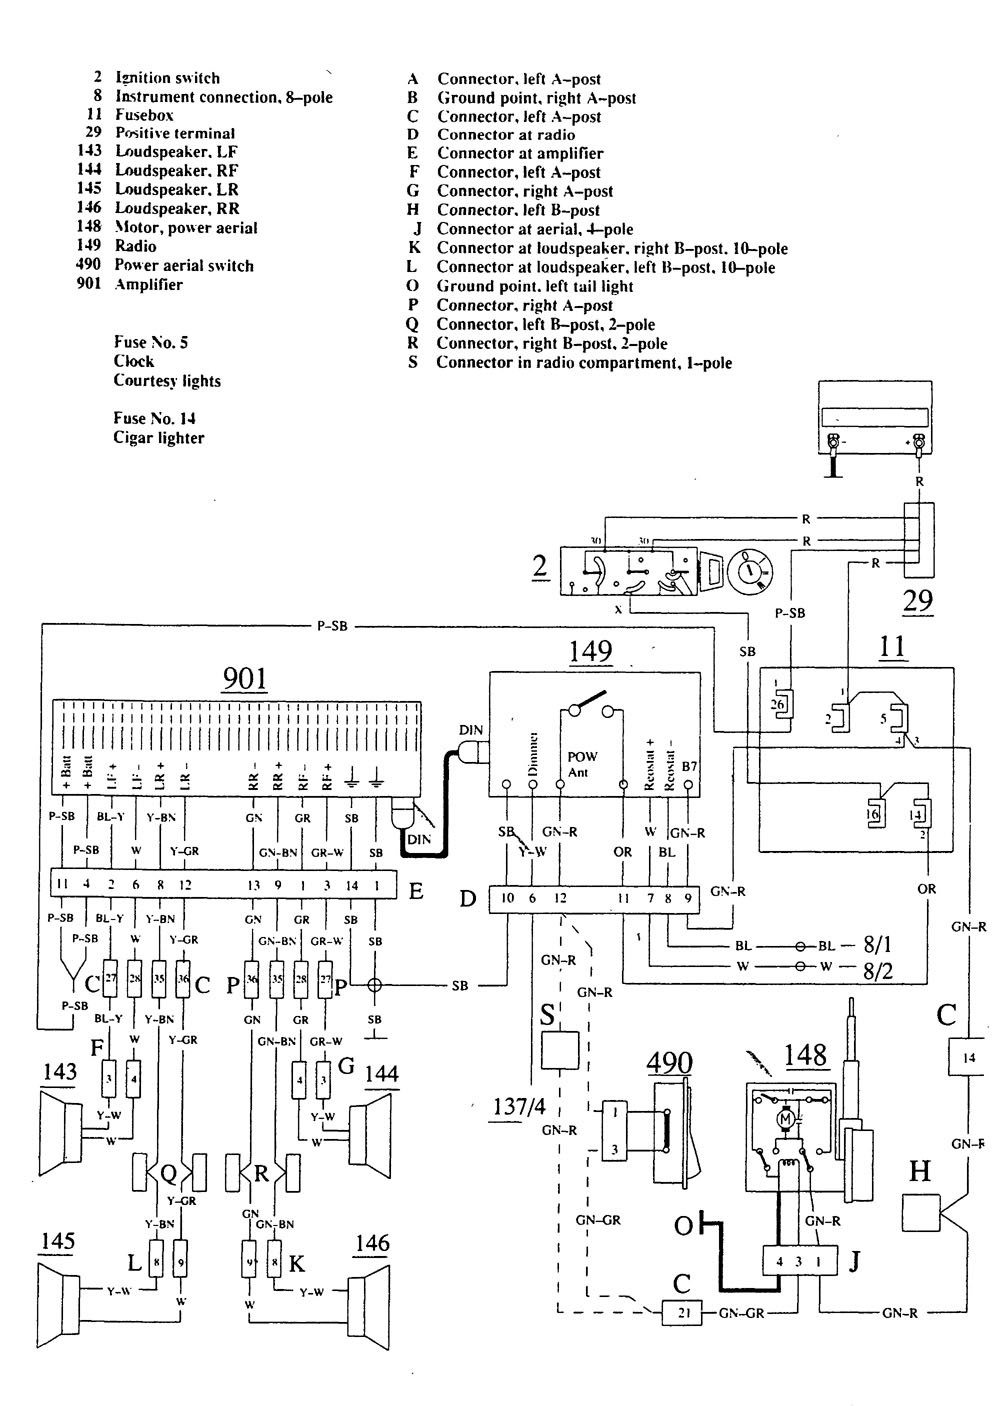 Wiring Diagram For 1990 Volvo 740 : Volvo wiring diagrams audio